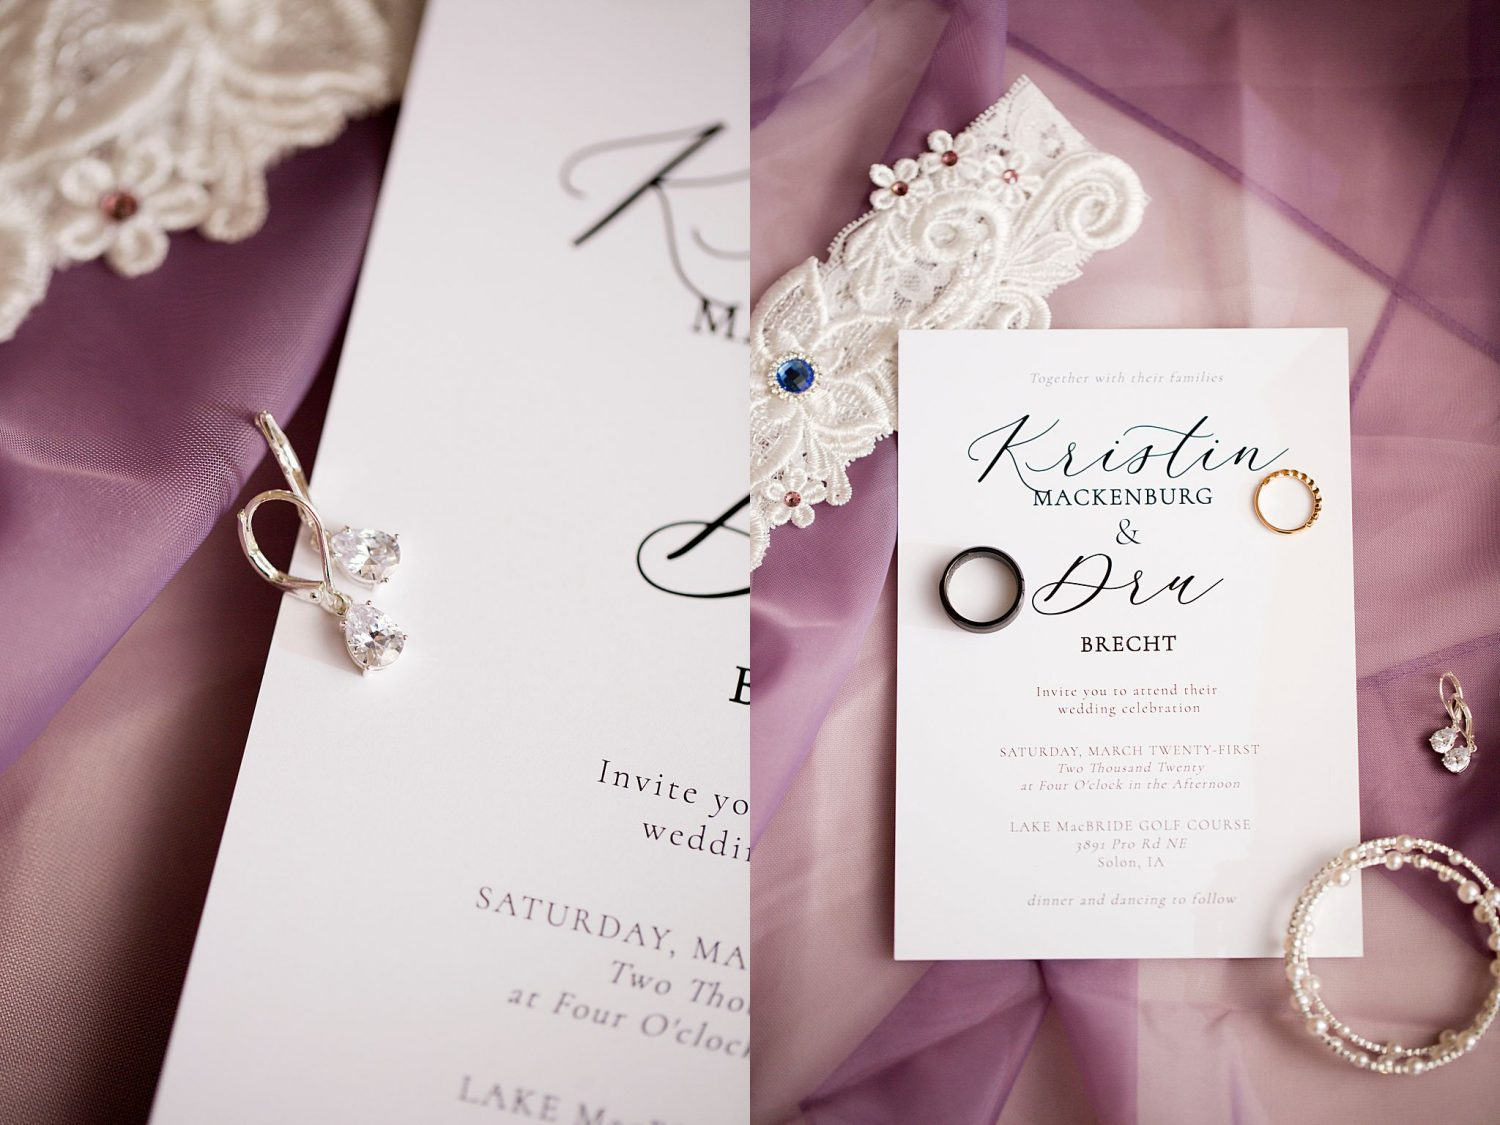 Closeup of wedding stationery and jewelry.